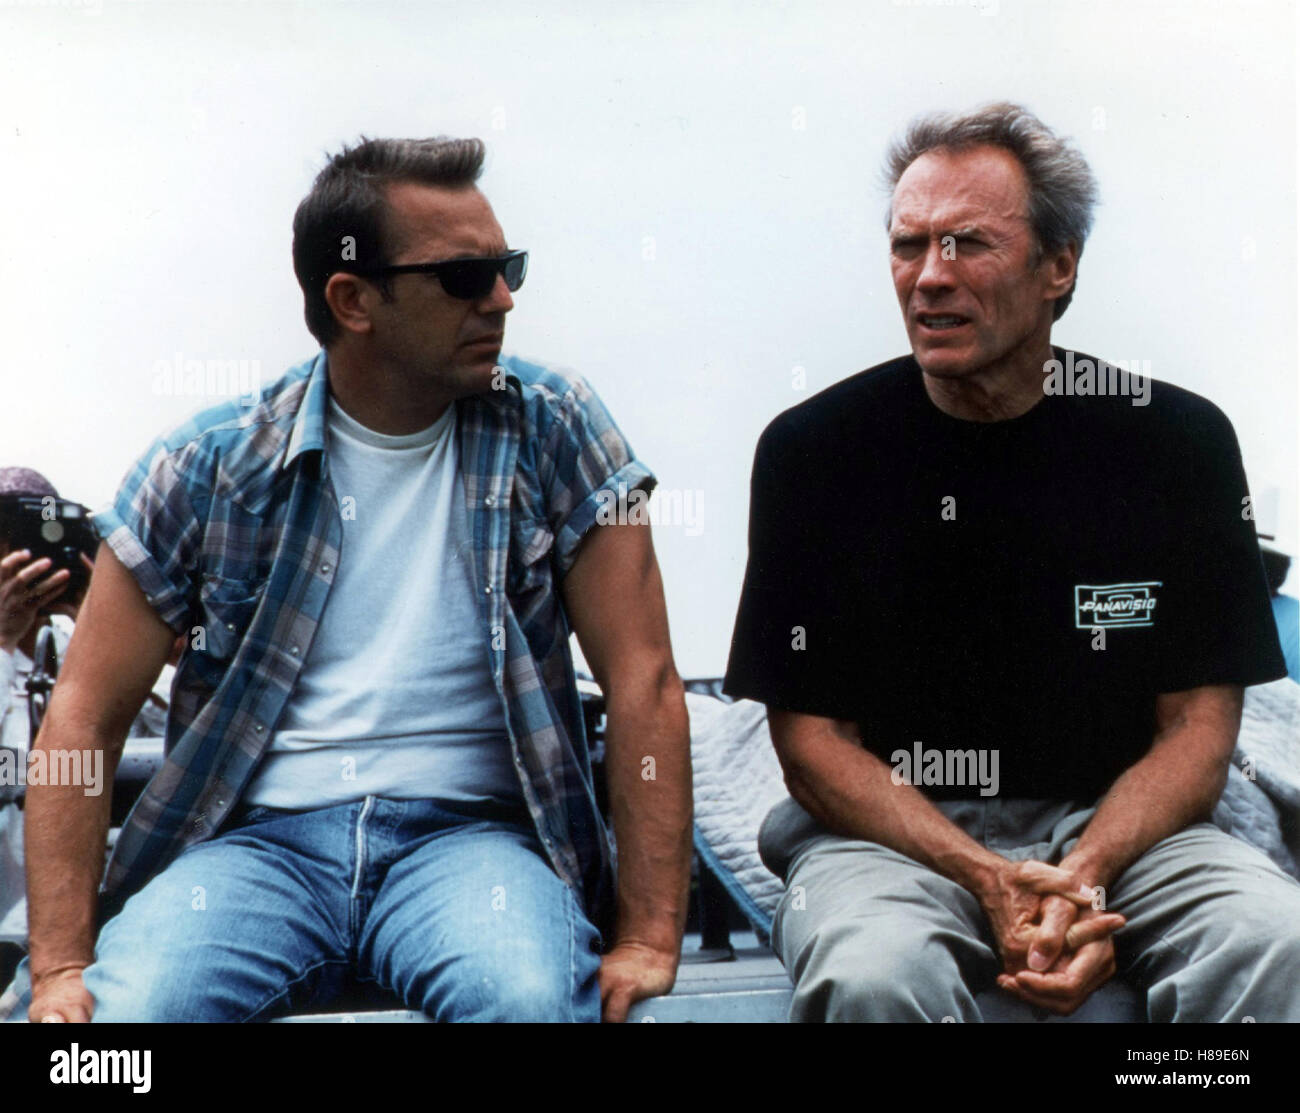 Monde Parfait Un Monde Parfait Usa 1993 Regie Clint Eastwood Kevin Costner Clint Eastwood Photo Stock Alamy